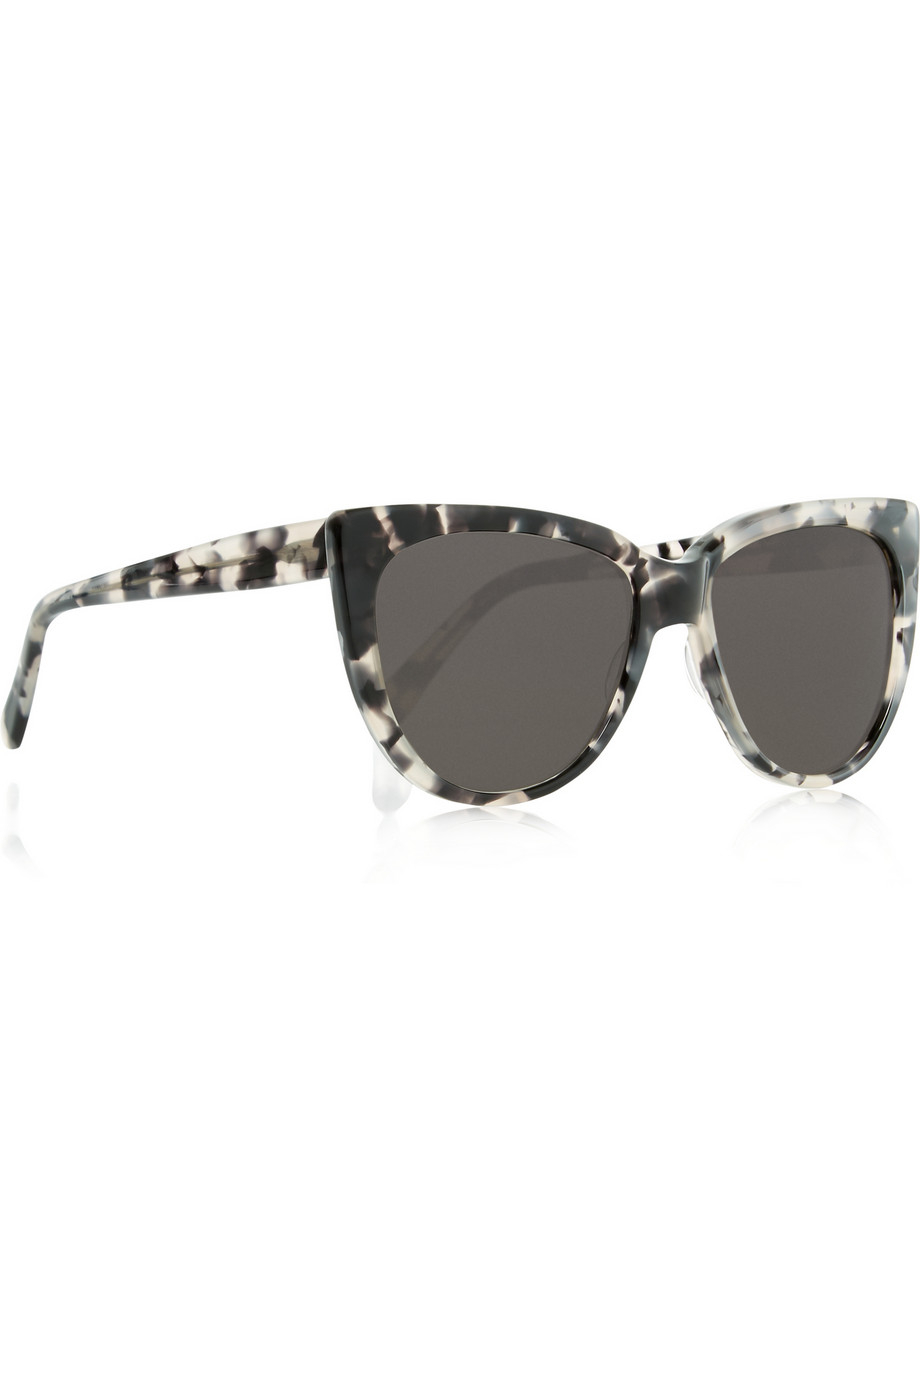 Prism Moscow Cat Eye Acetate Sunglasses in Grey